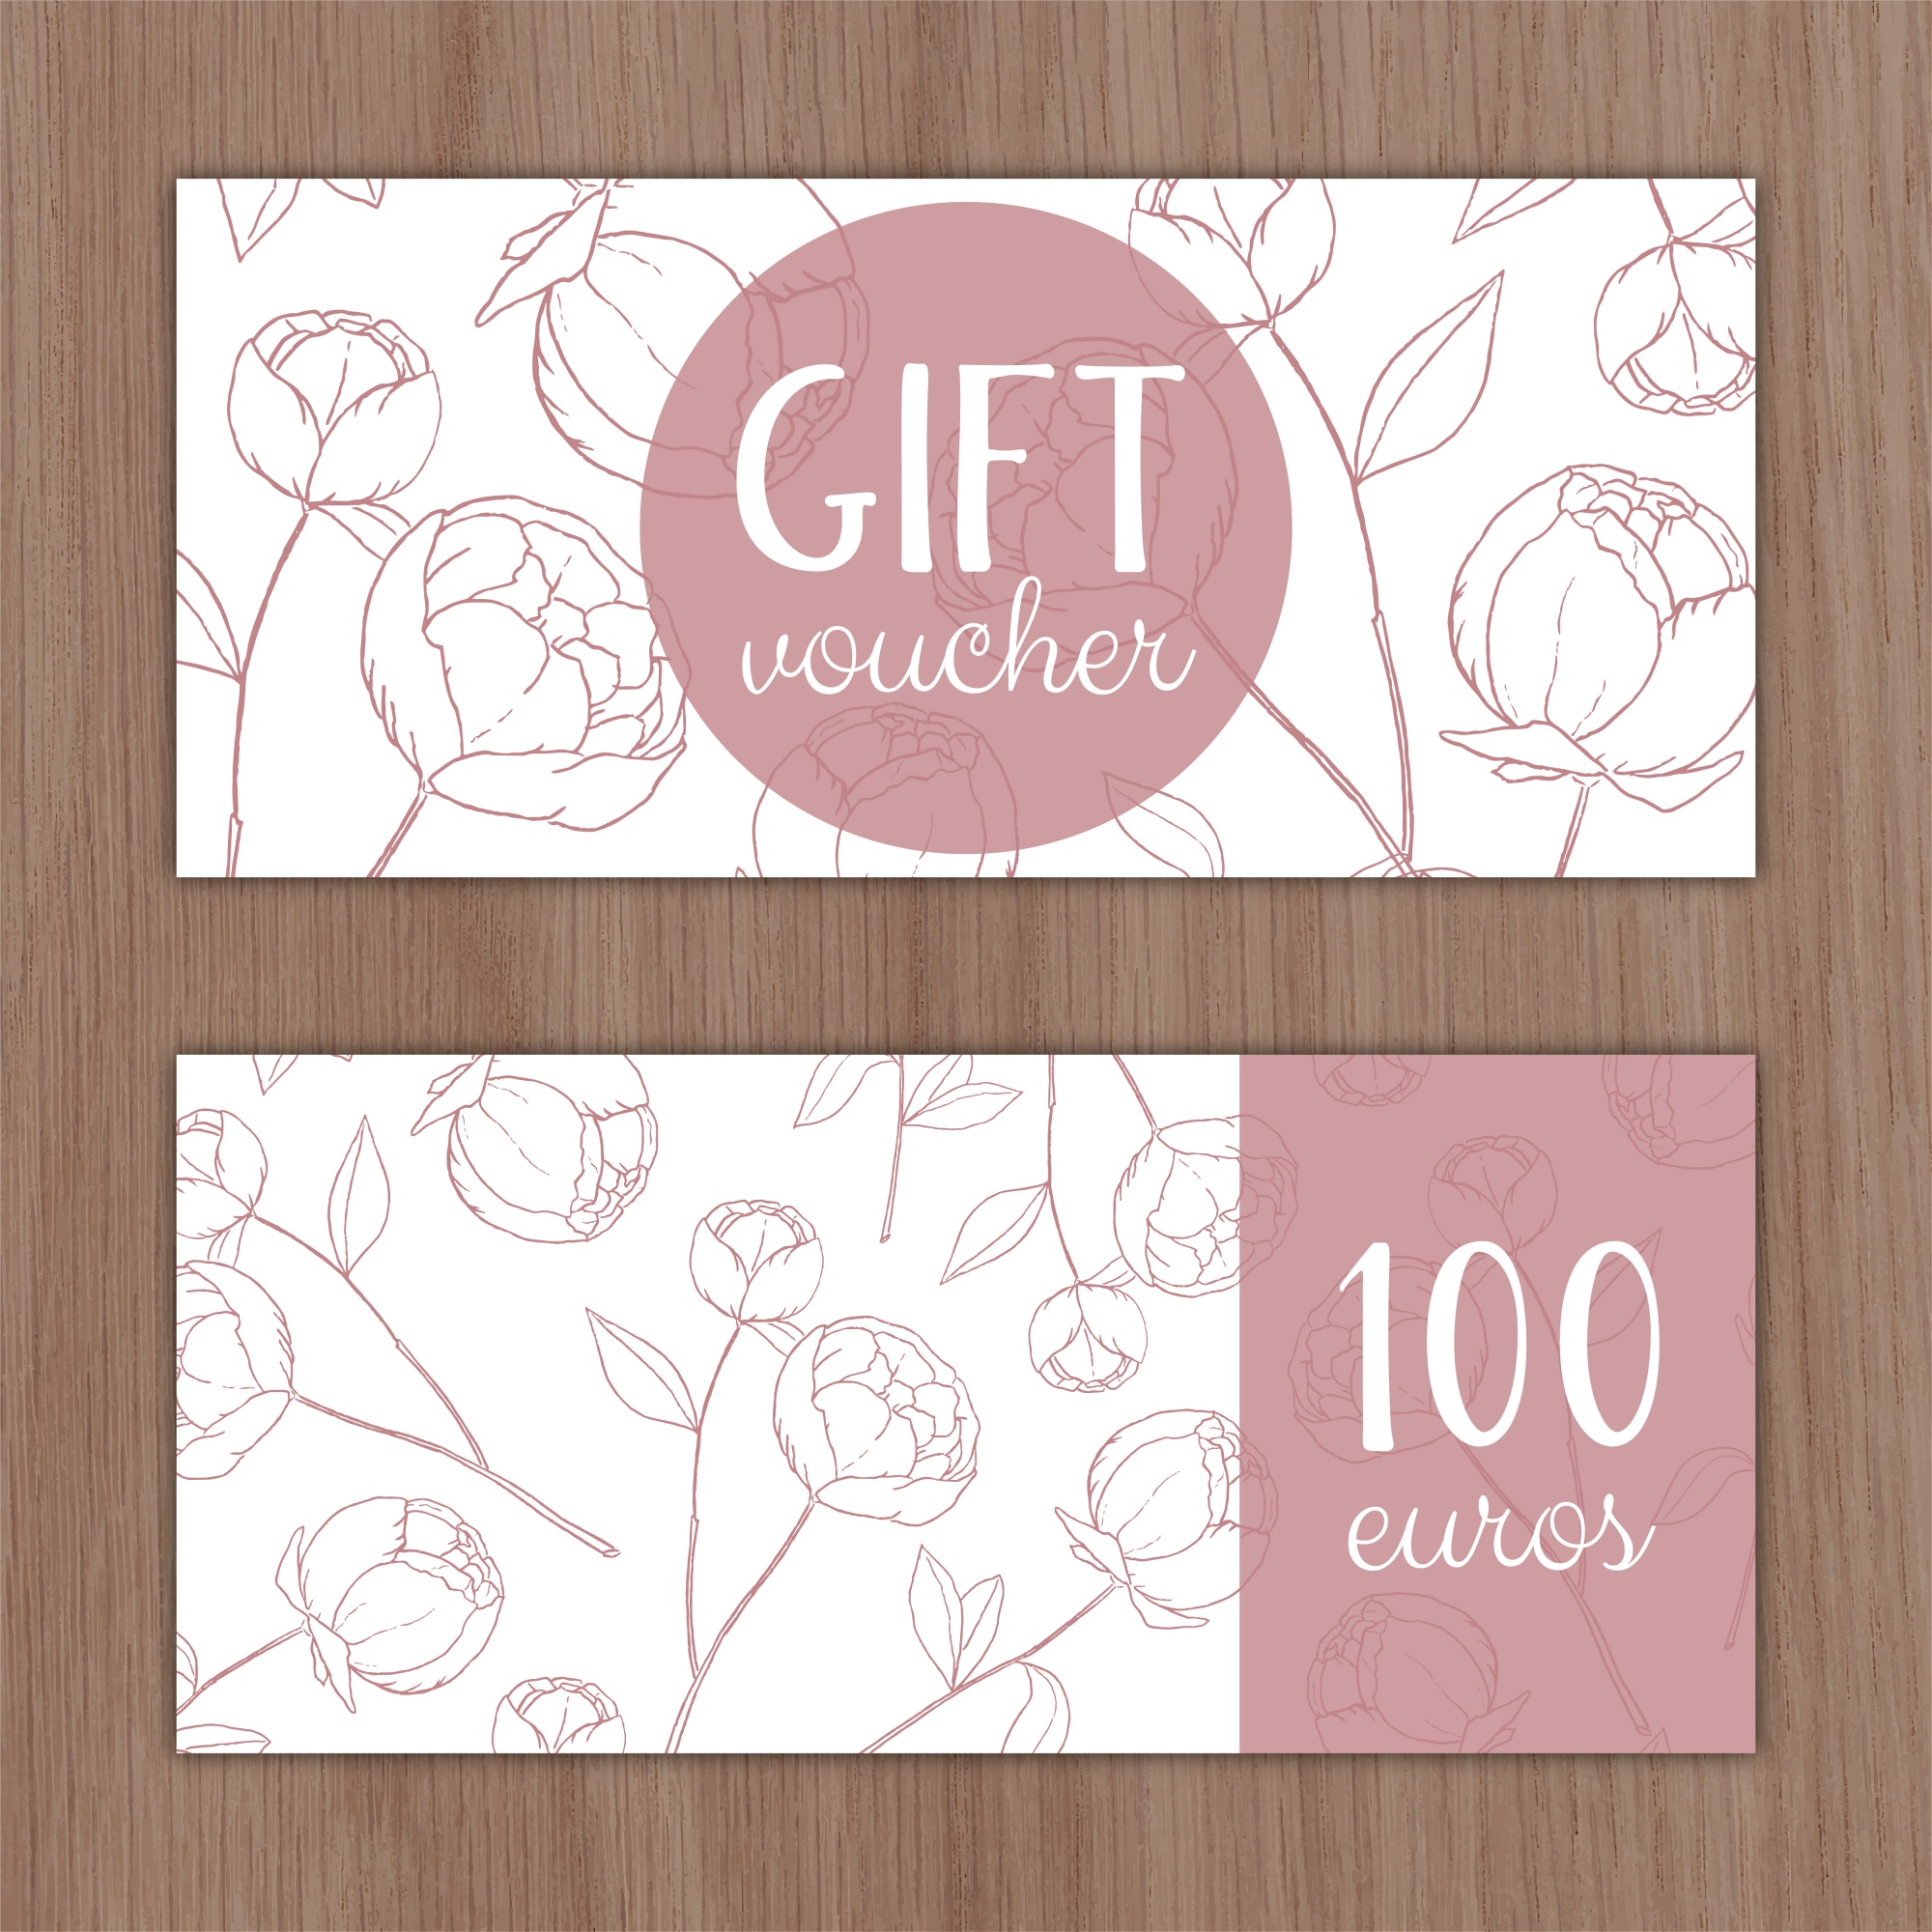 Discount voucher with hand drawn flowers